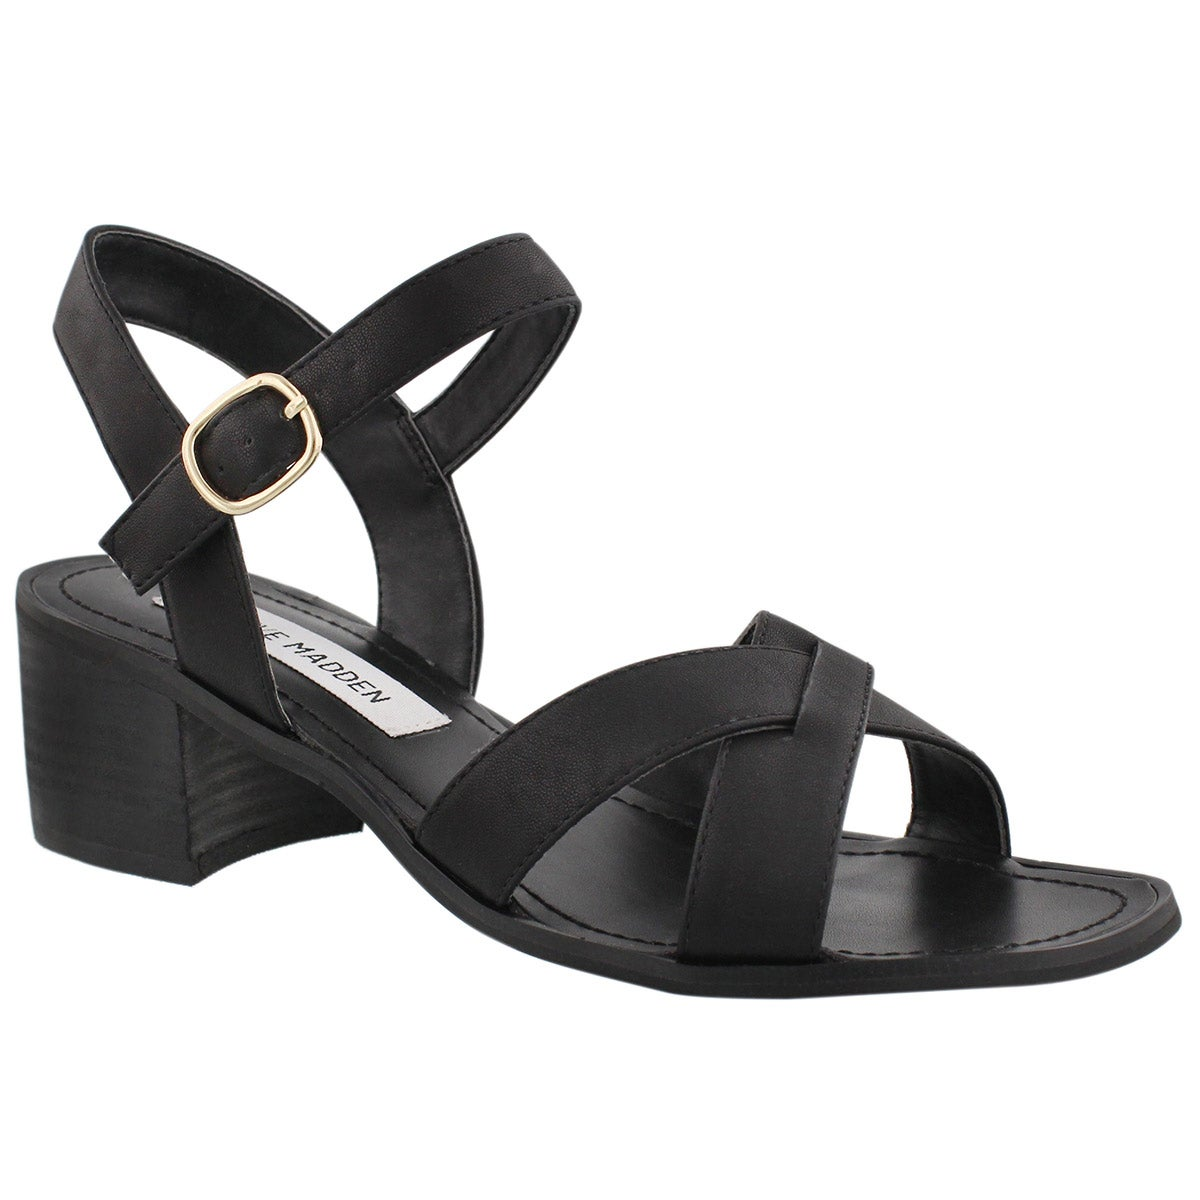 Women's FATIMA black dress sandals